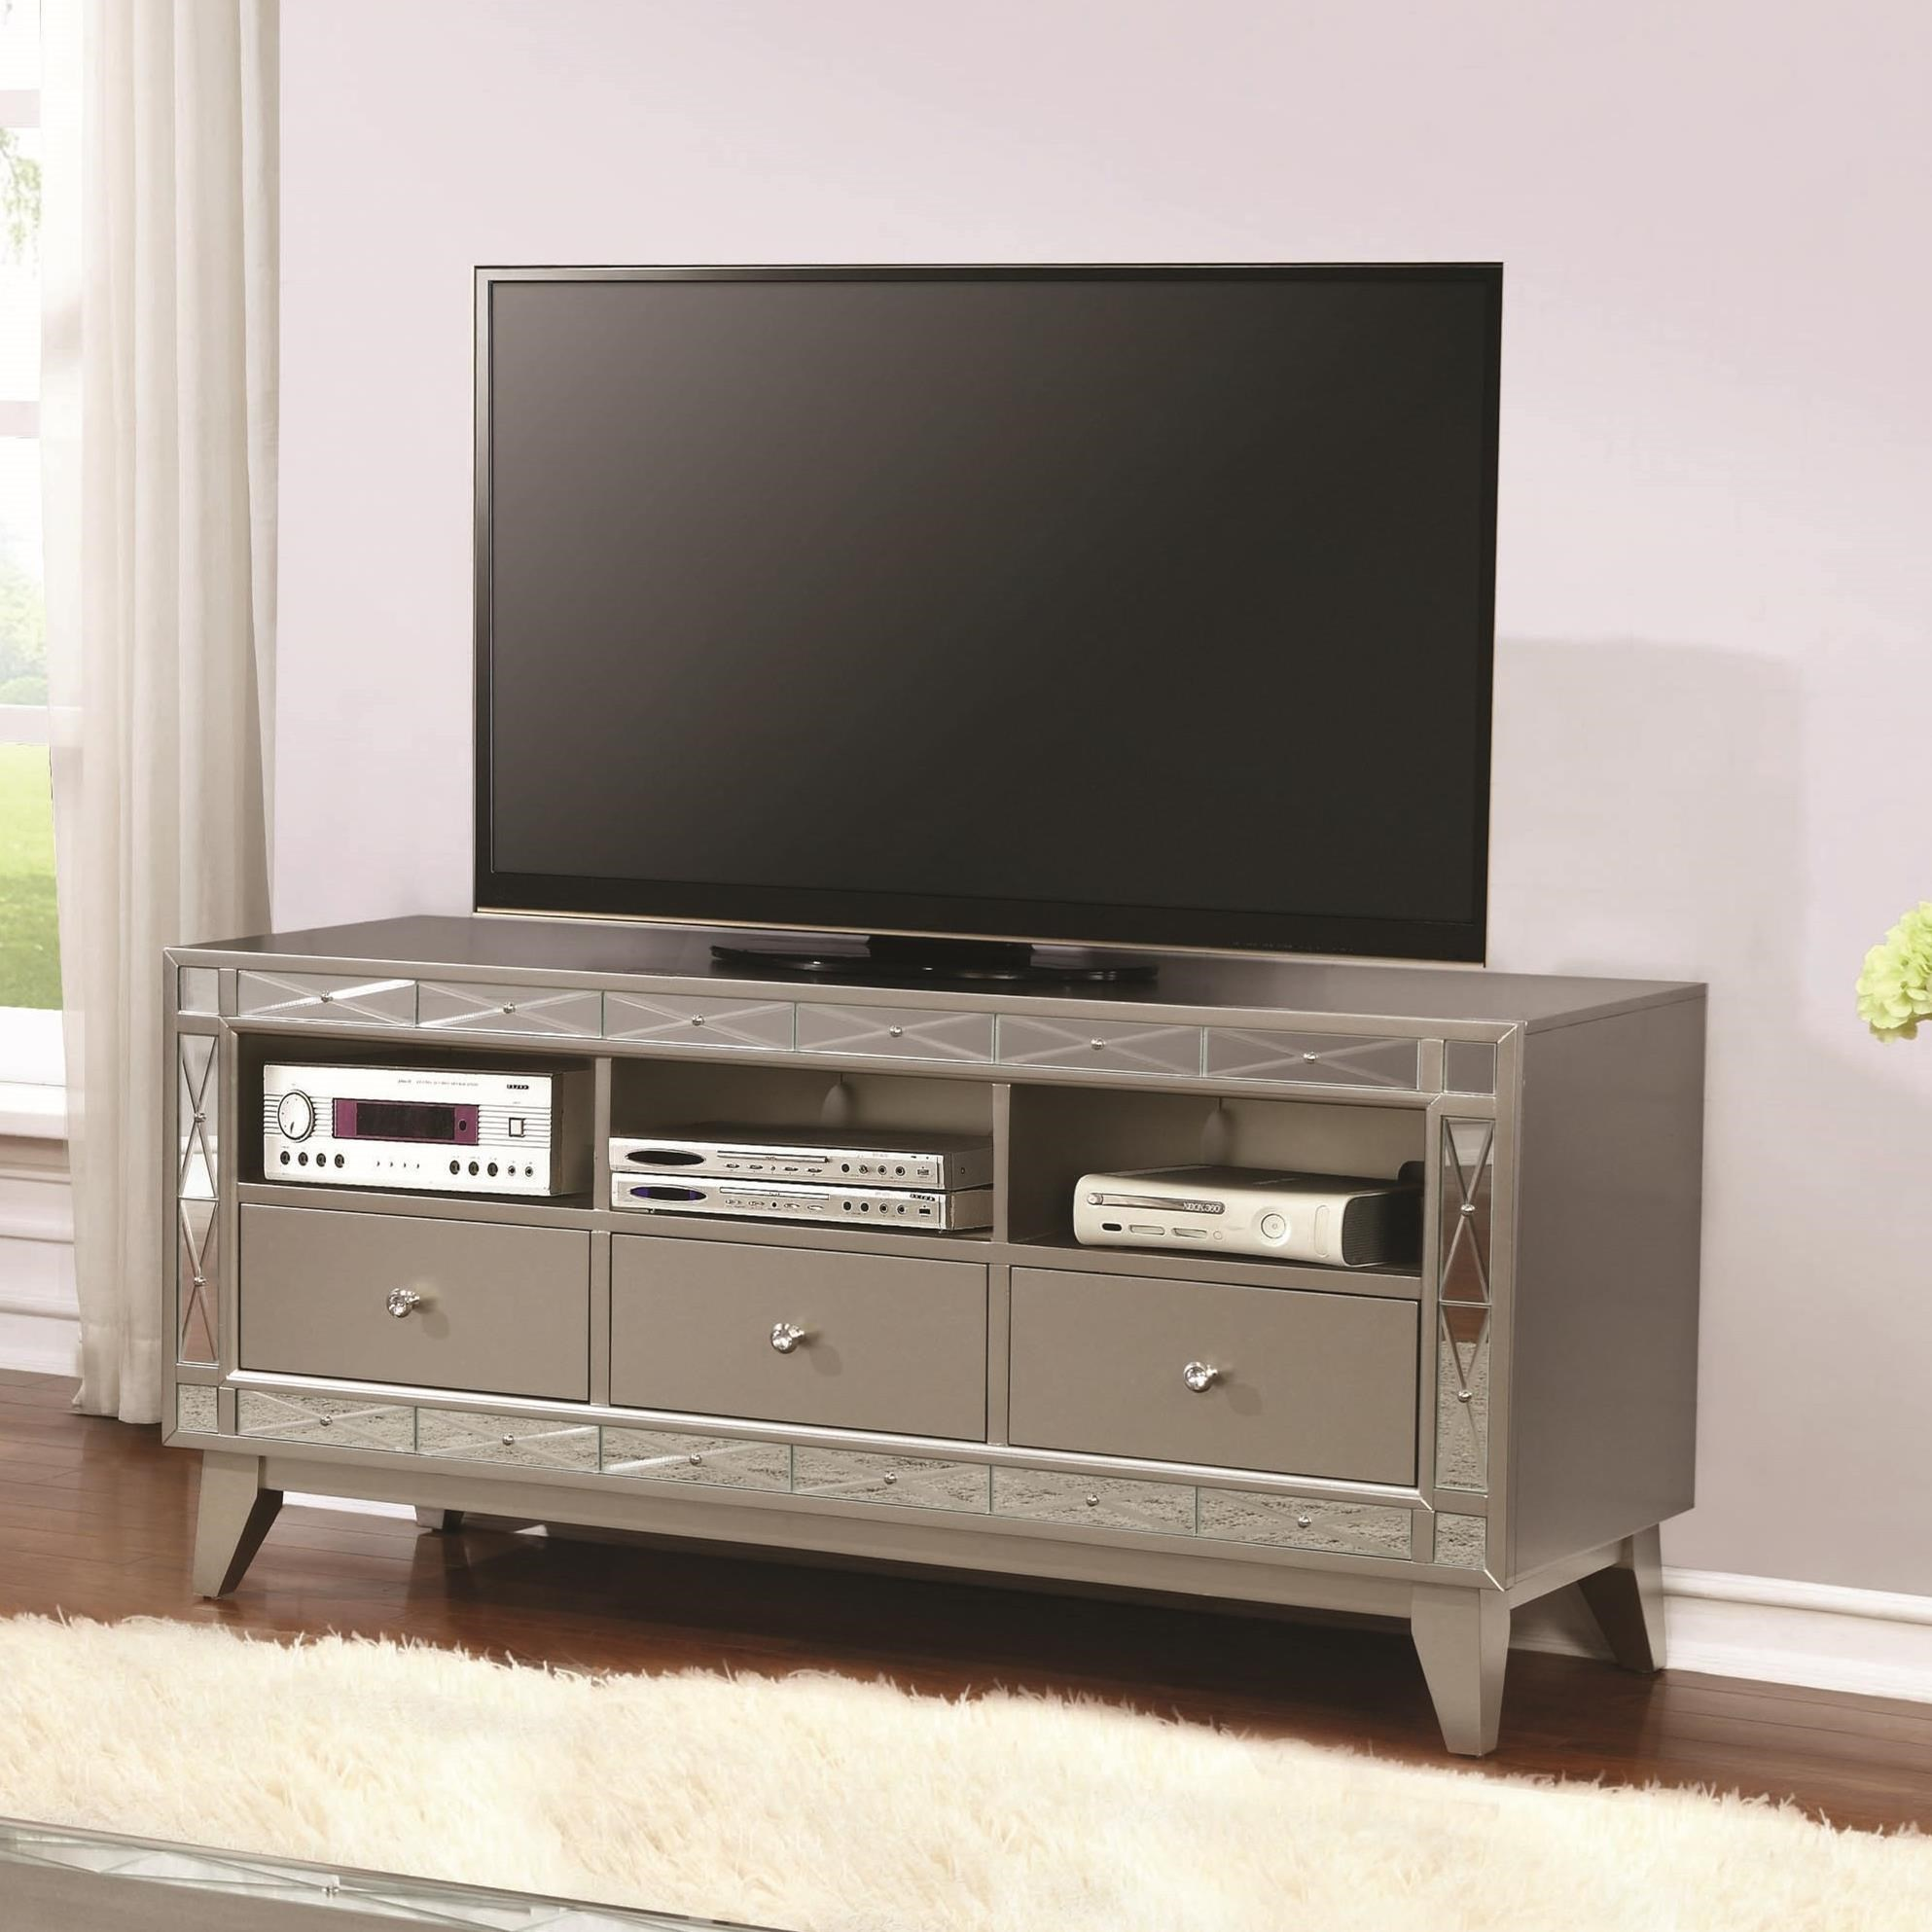 Tv Units Entertainment Units Metallic Tv Console With Mirrored Accent By Coaster At Value City Furniture